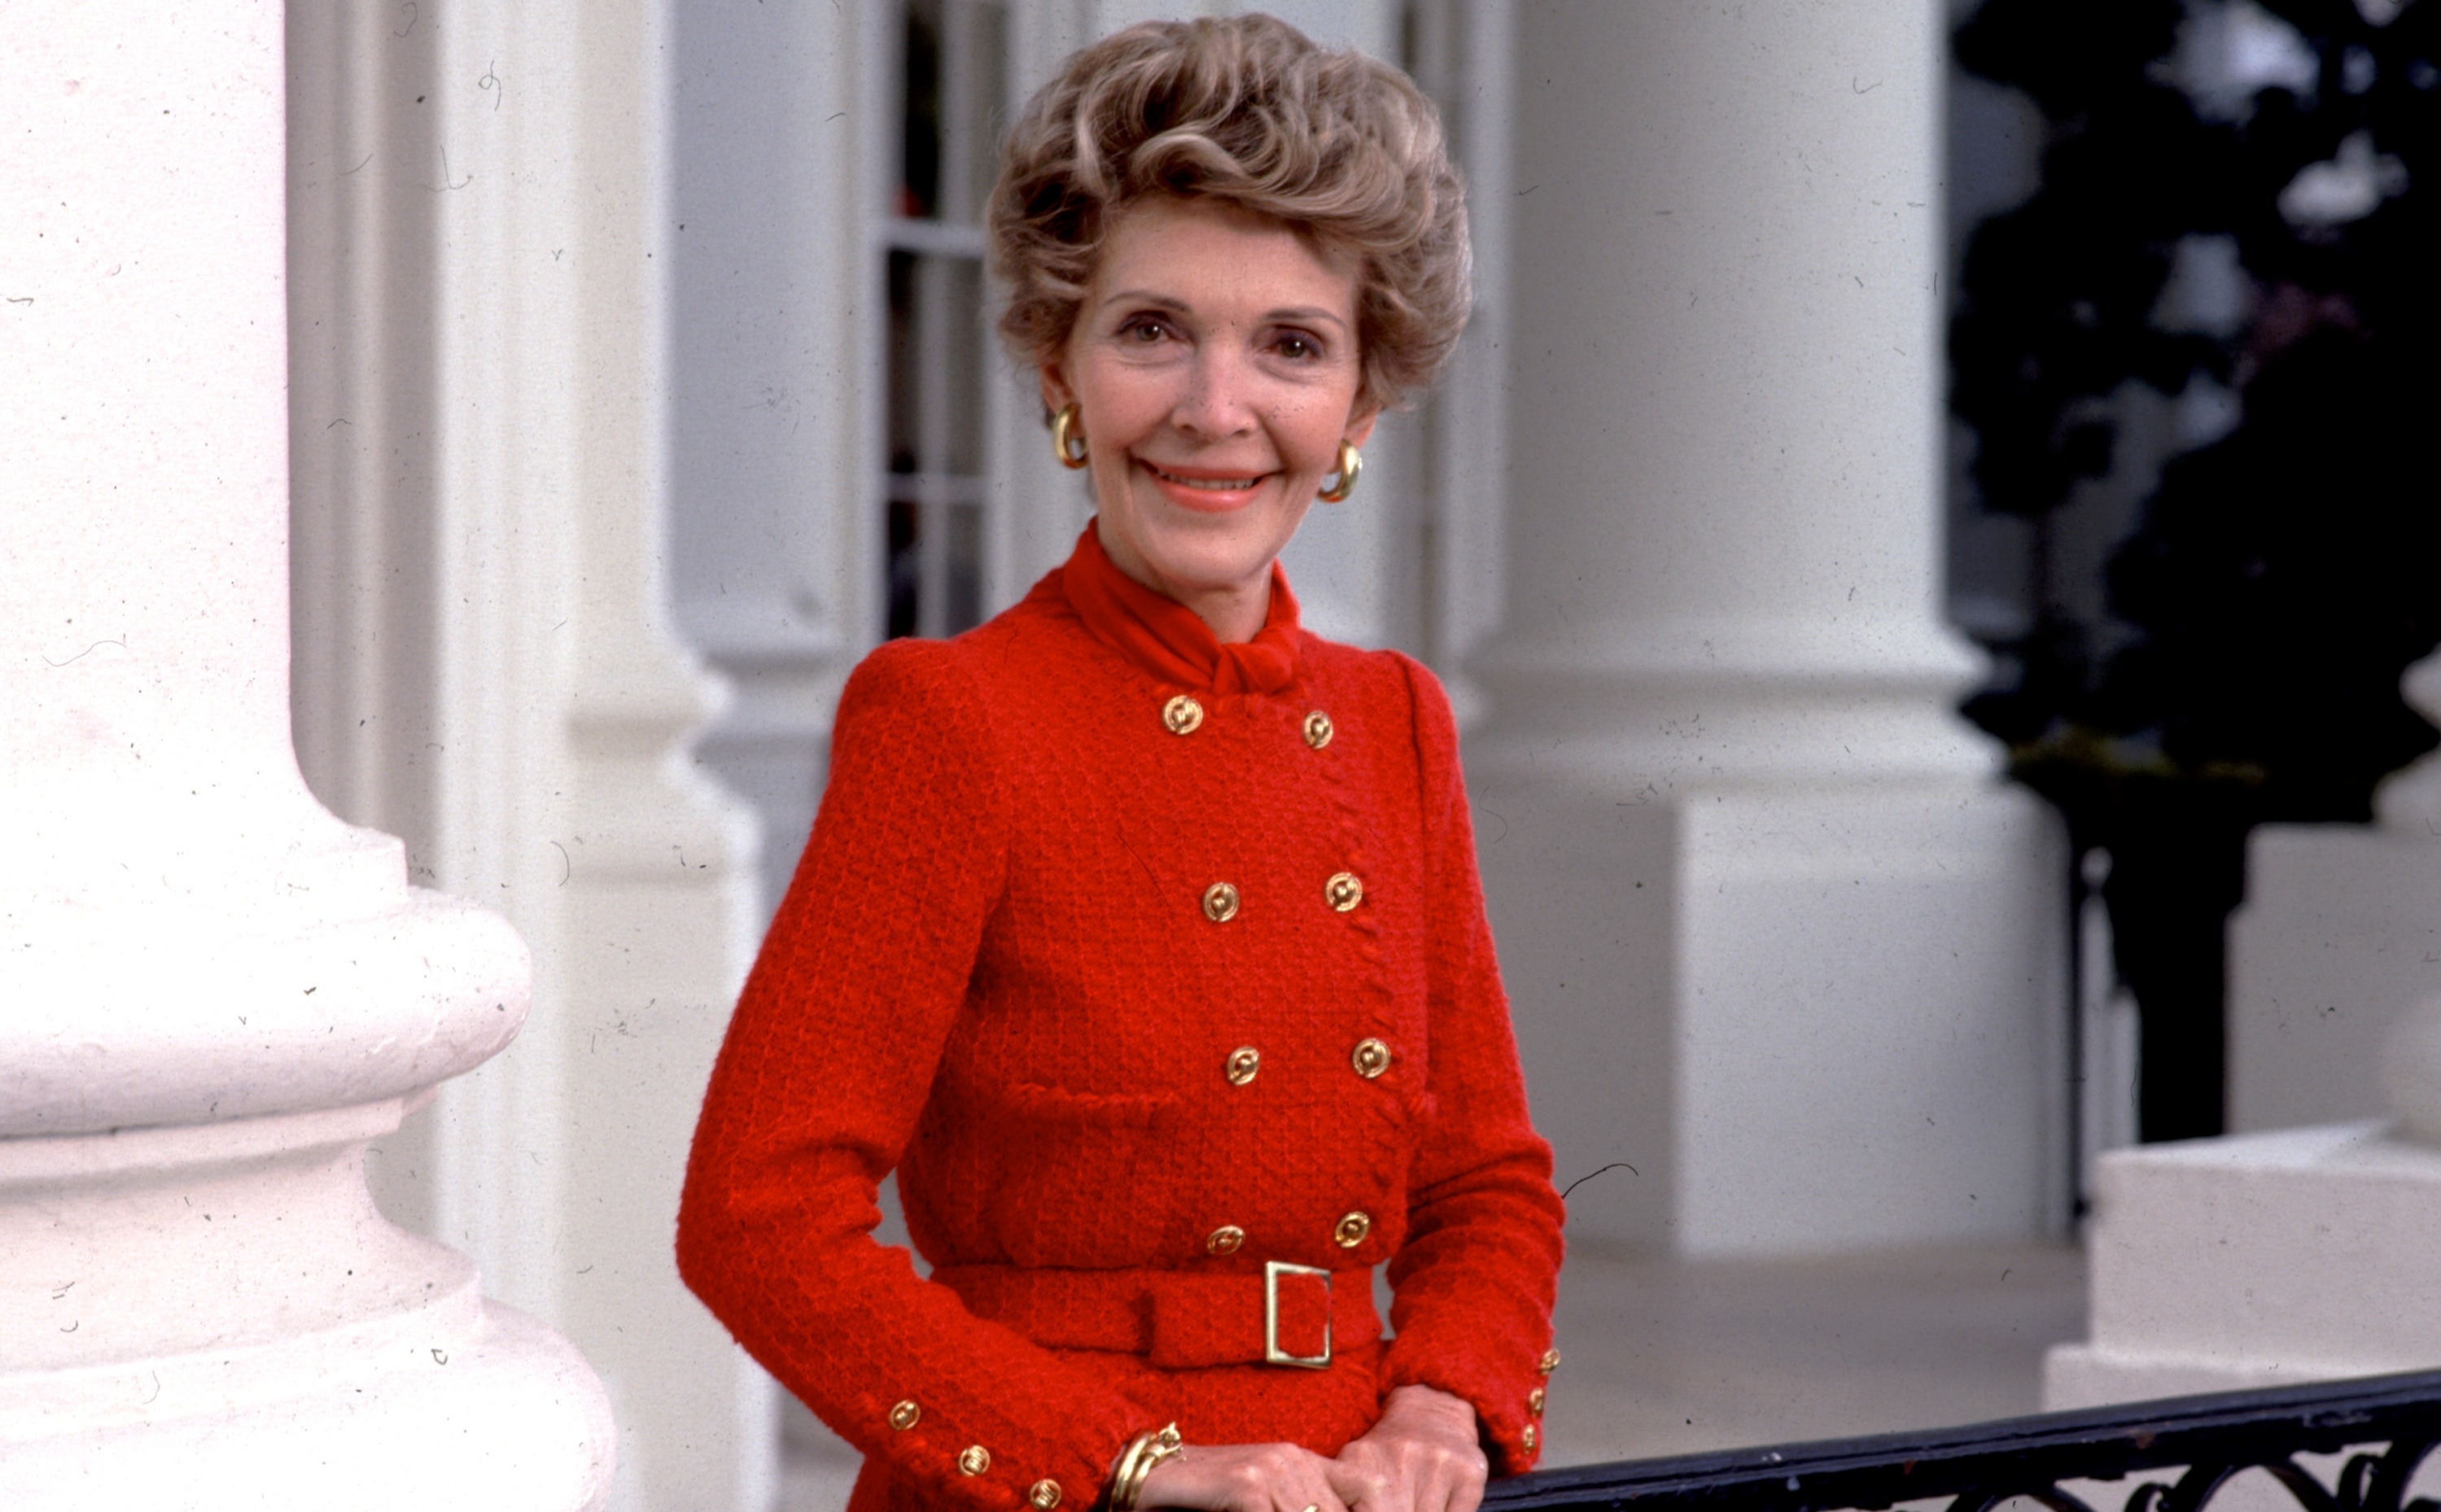 nancy reagan aaron ramsey curse